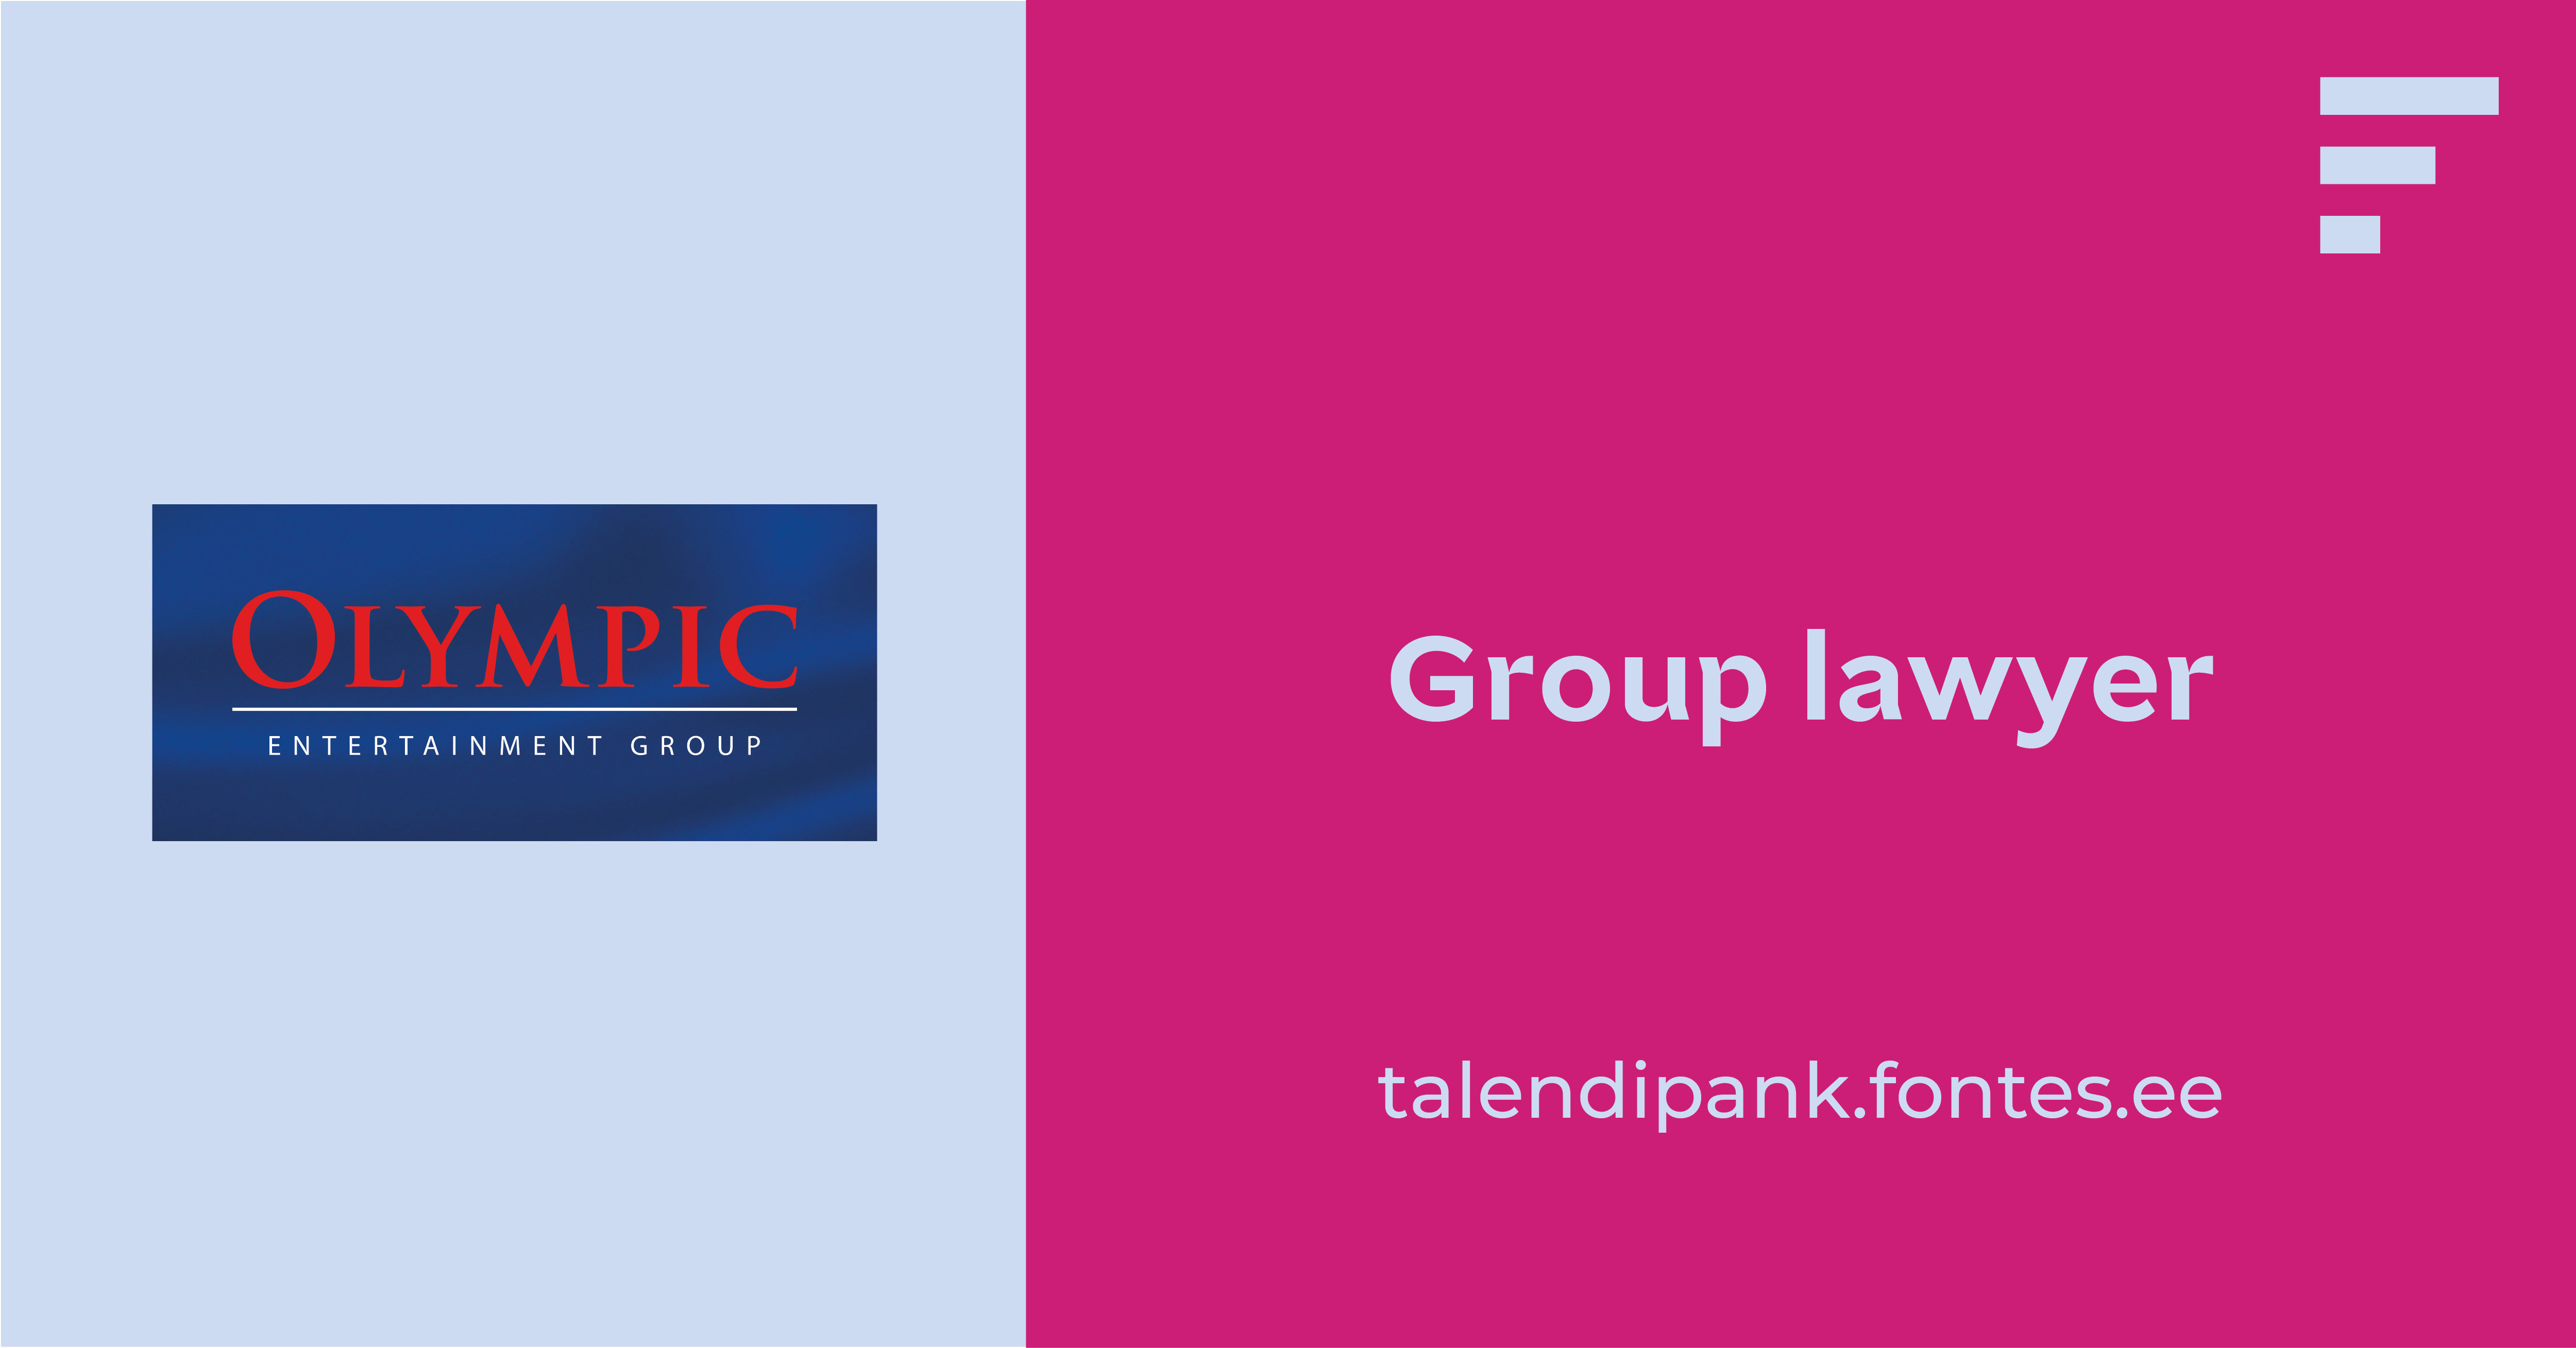 GROUP LAWYER